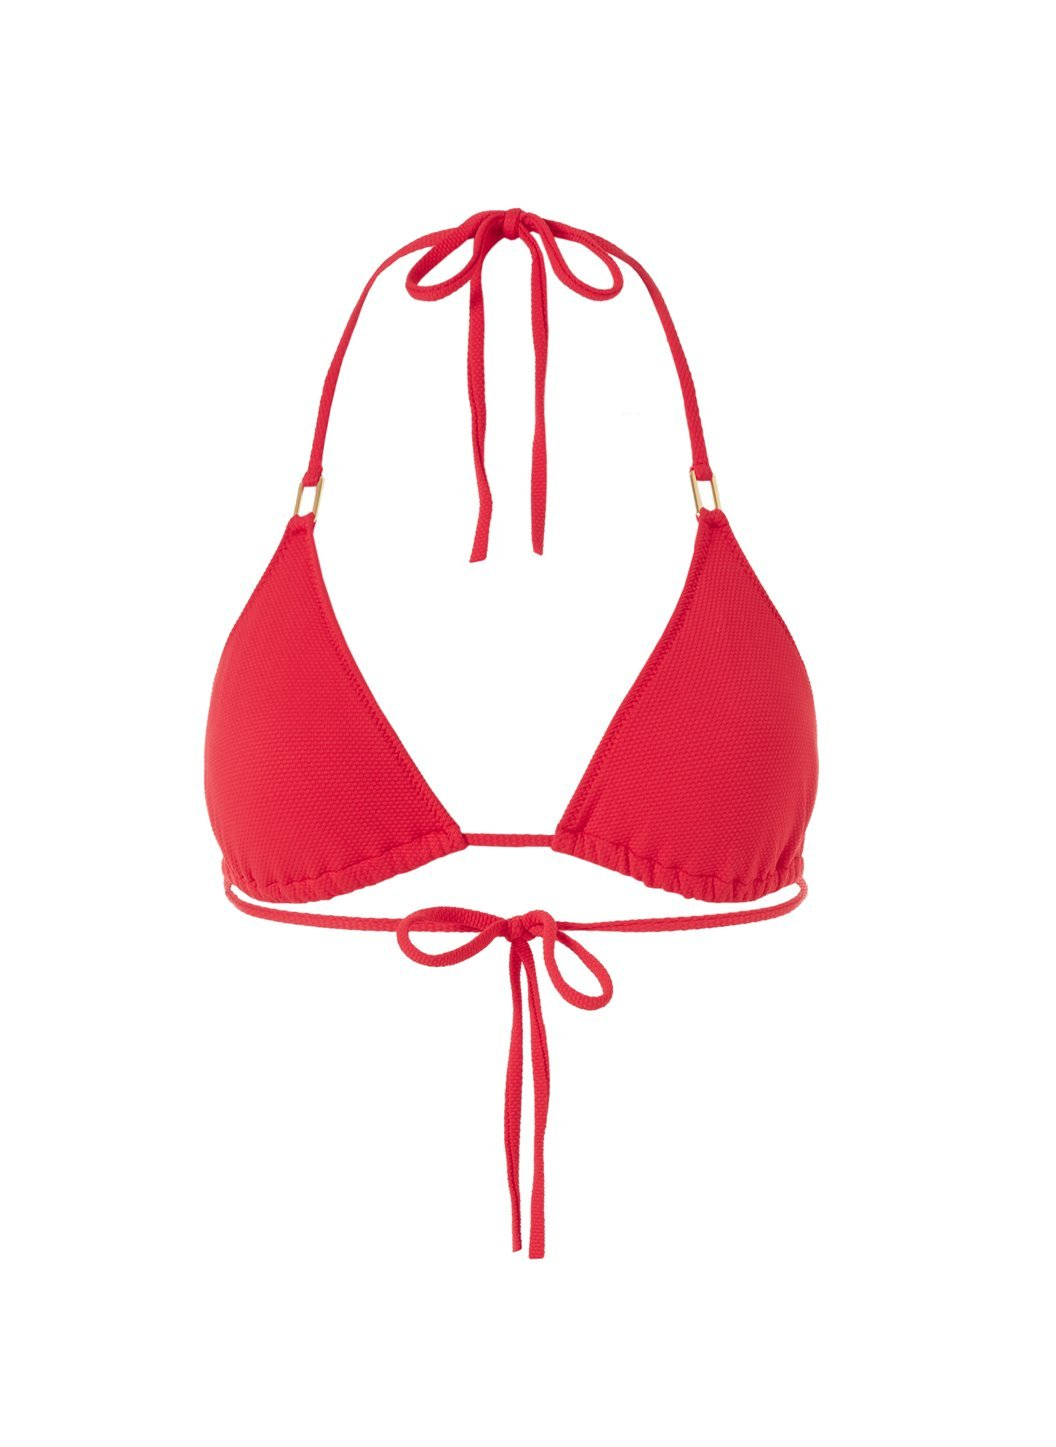 cancun red pique bikini top